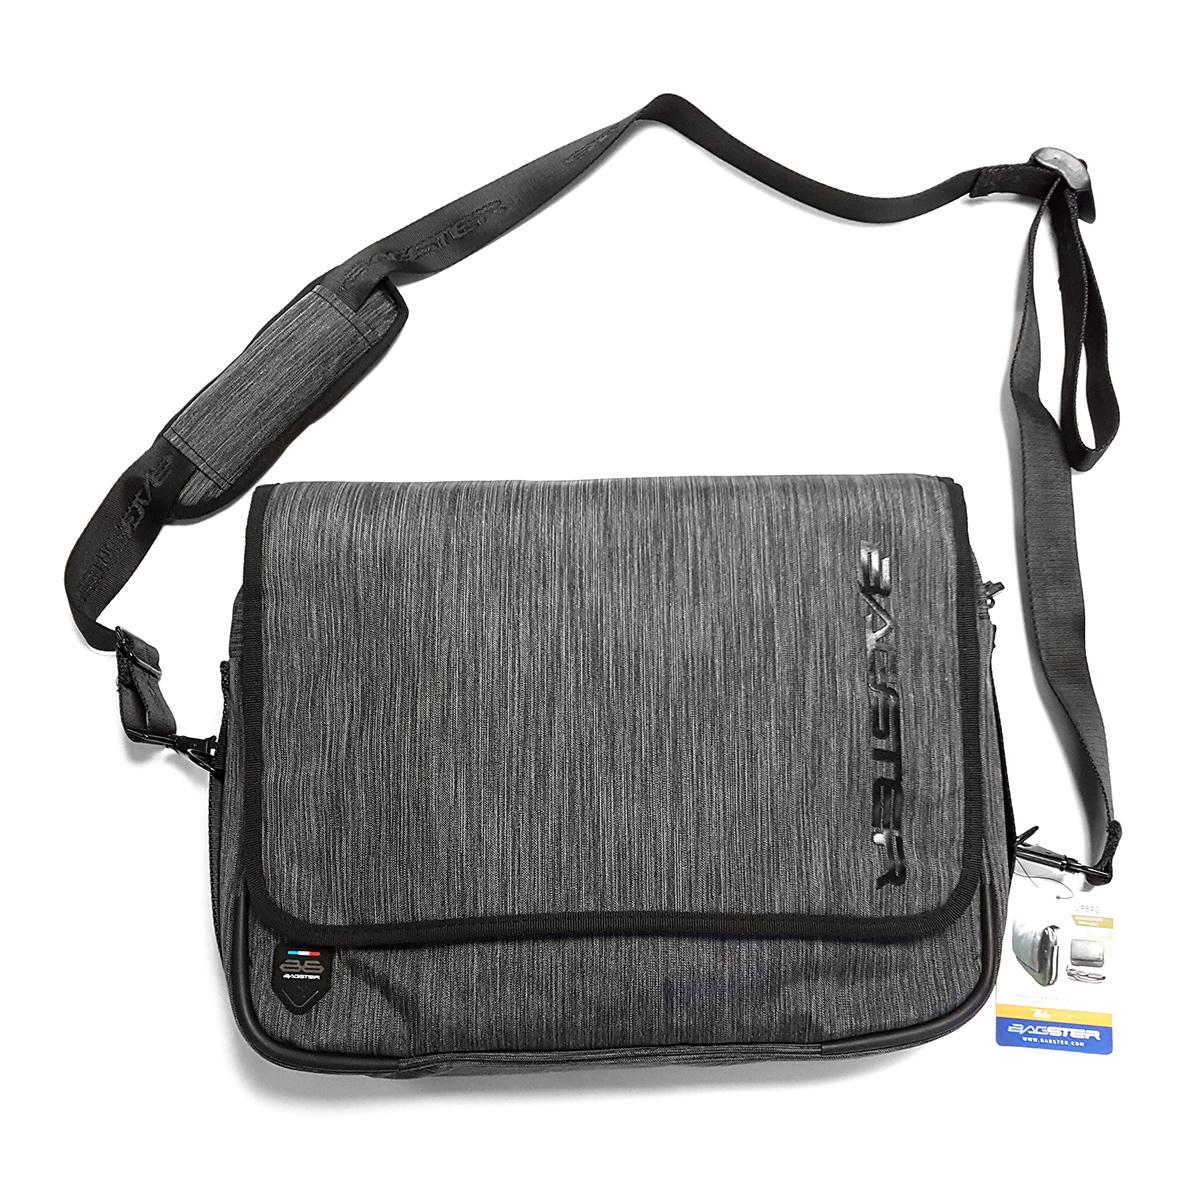 SALE Bagster Urbag Water Resistant Motorcycle Messenger Laptop Bag